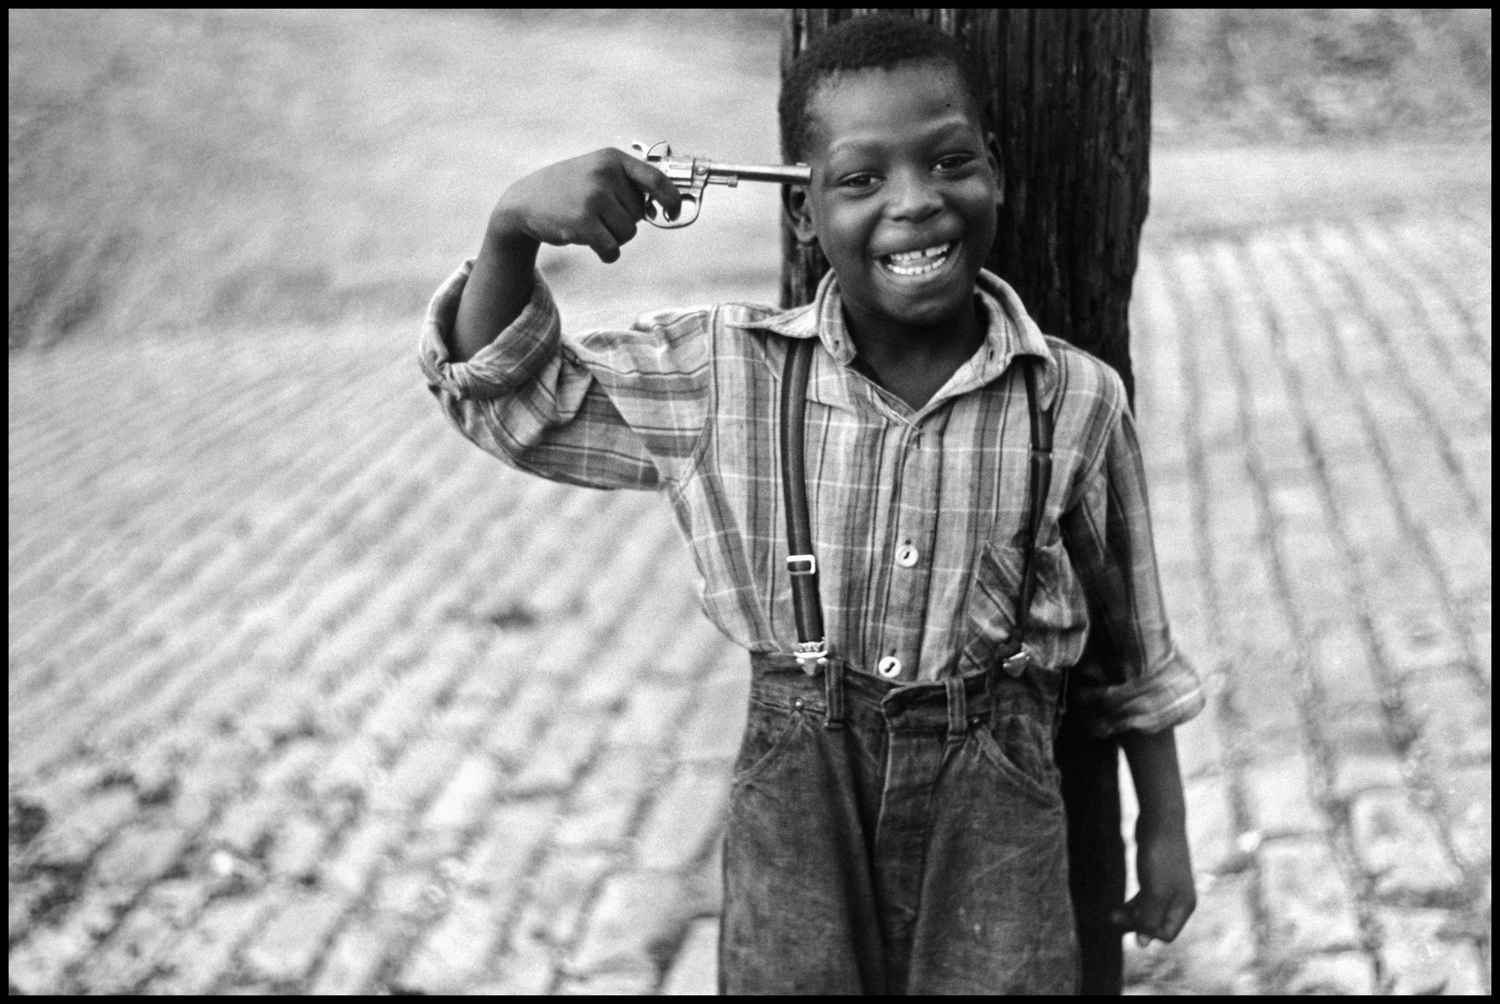 "Pittsburgh, Pennsylvania, 1950. ""This is another favorite early photo of mine taken in Pittsburgh in 1950. Its shows a black boy with a gun to his head. Again, it's a picture, but you can make out of it whatever you wish. I was there working for Roy Stryker, documenting Pittsburgh as it was about to experience big change. The entire point of Pittsburgh was being demolished for new buildings and Roy (who worked for the FSA) hired me, along with a lot of other photographers, to document it."""